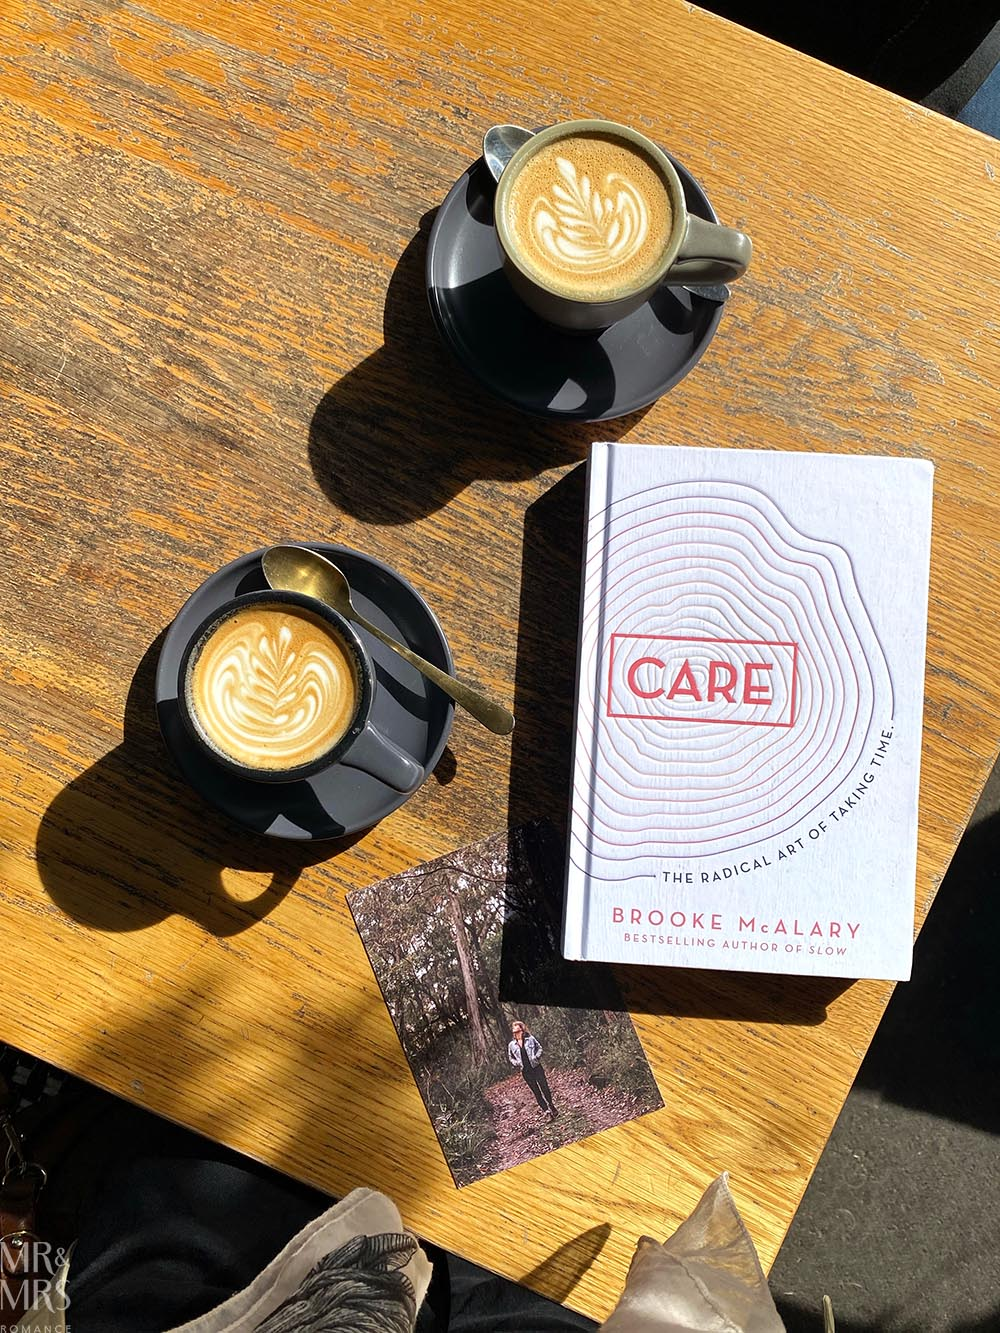 Care - the radical art of taking time by Brooke McAlary